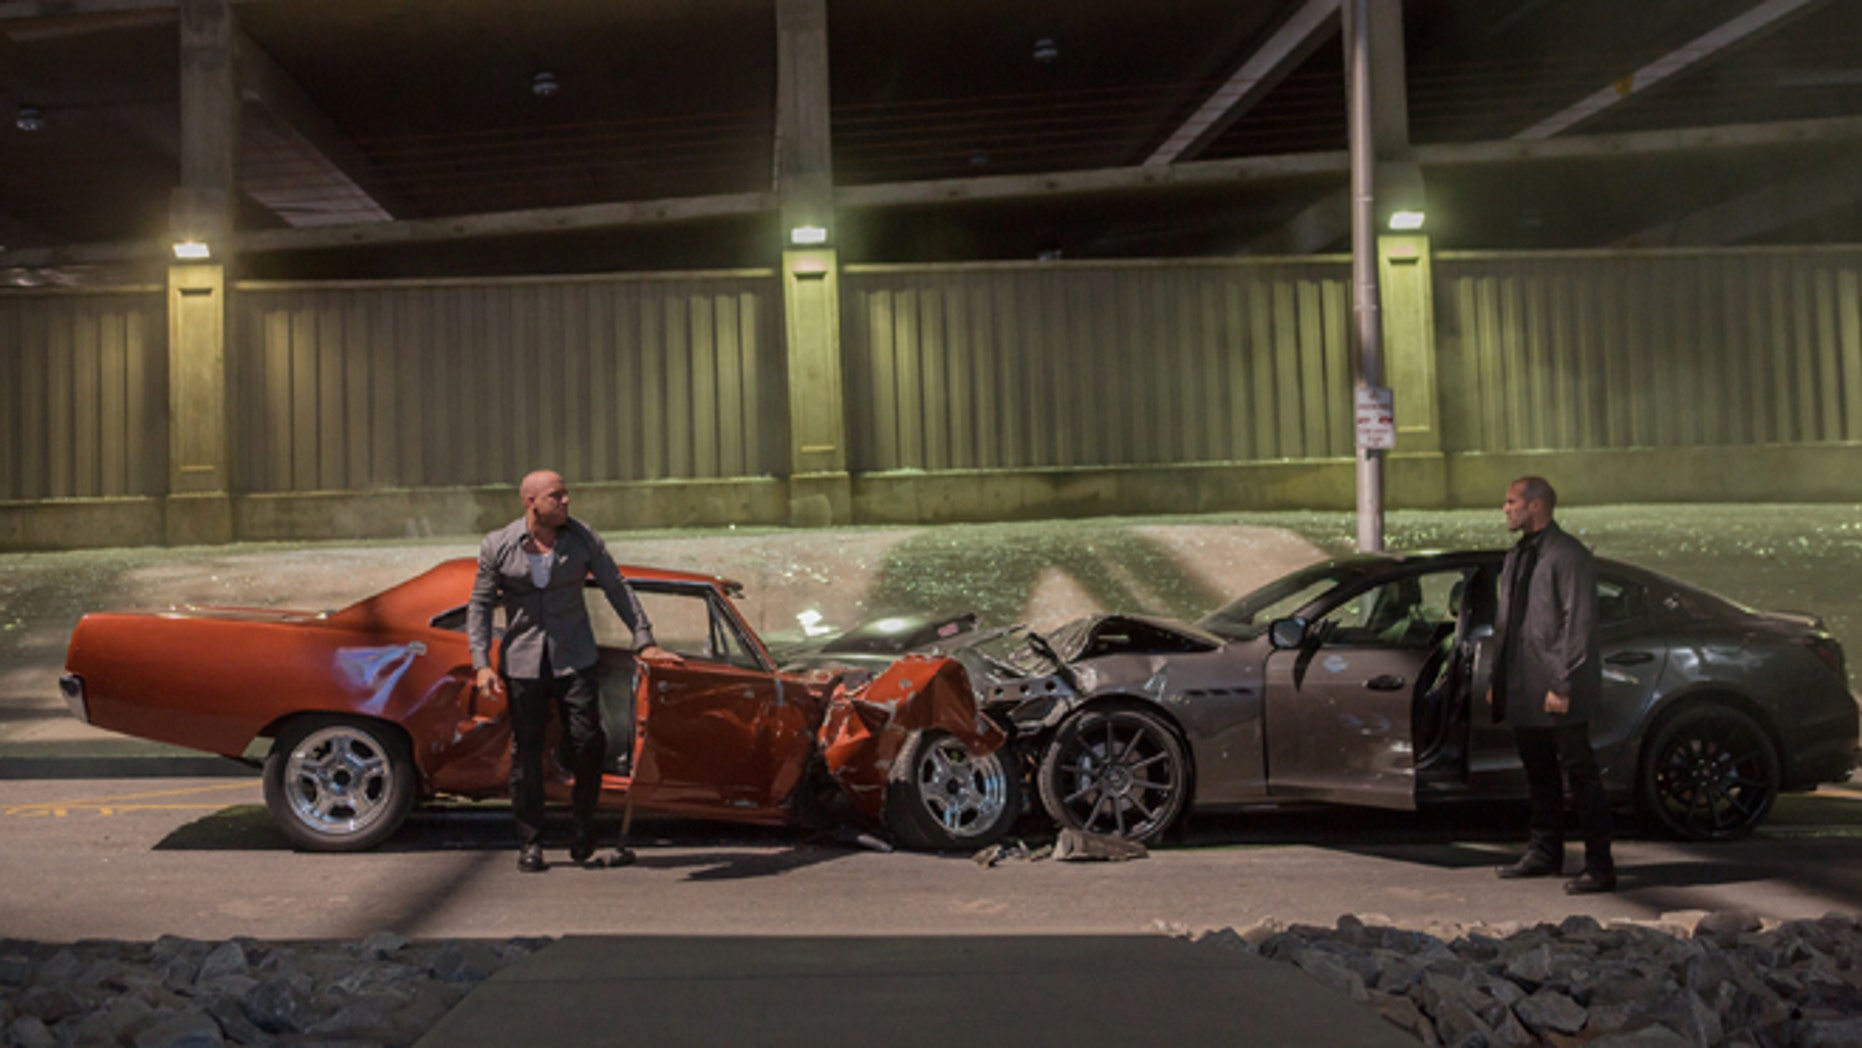 """Vin Diesel, left, as Dom Toretto, and Jason Statham, as Deckard Shaw, in a scene from """"Furious 7."""""""